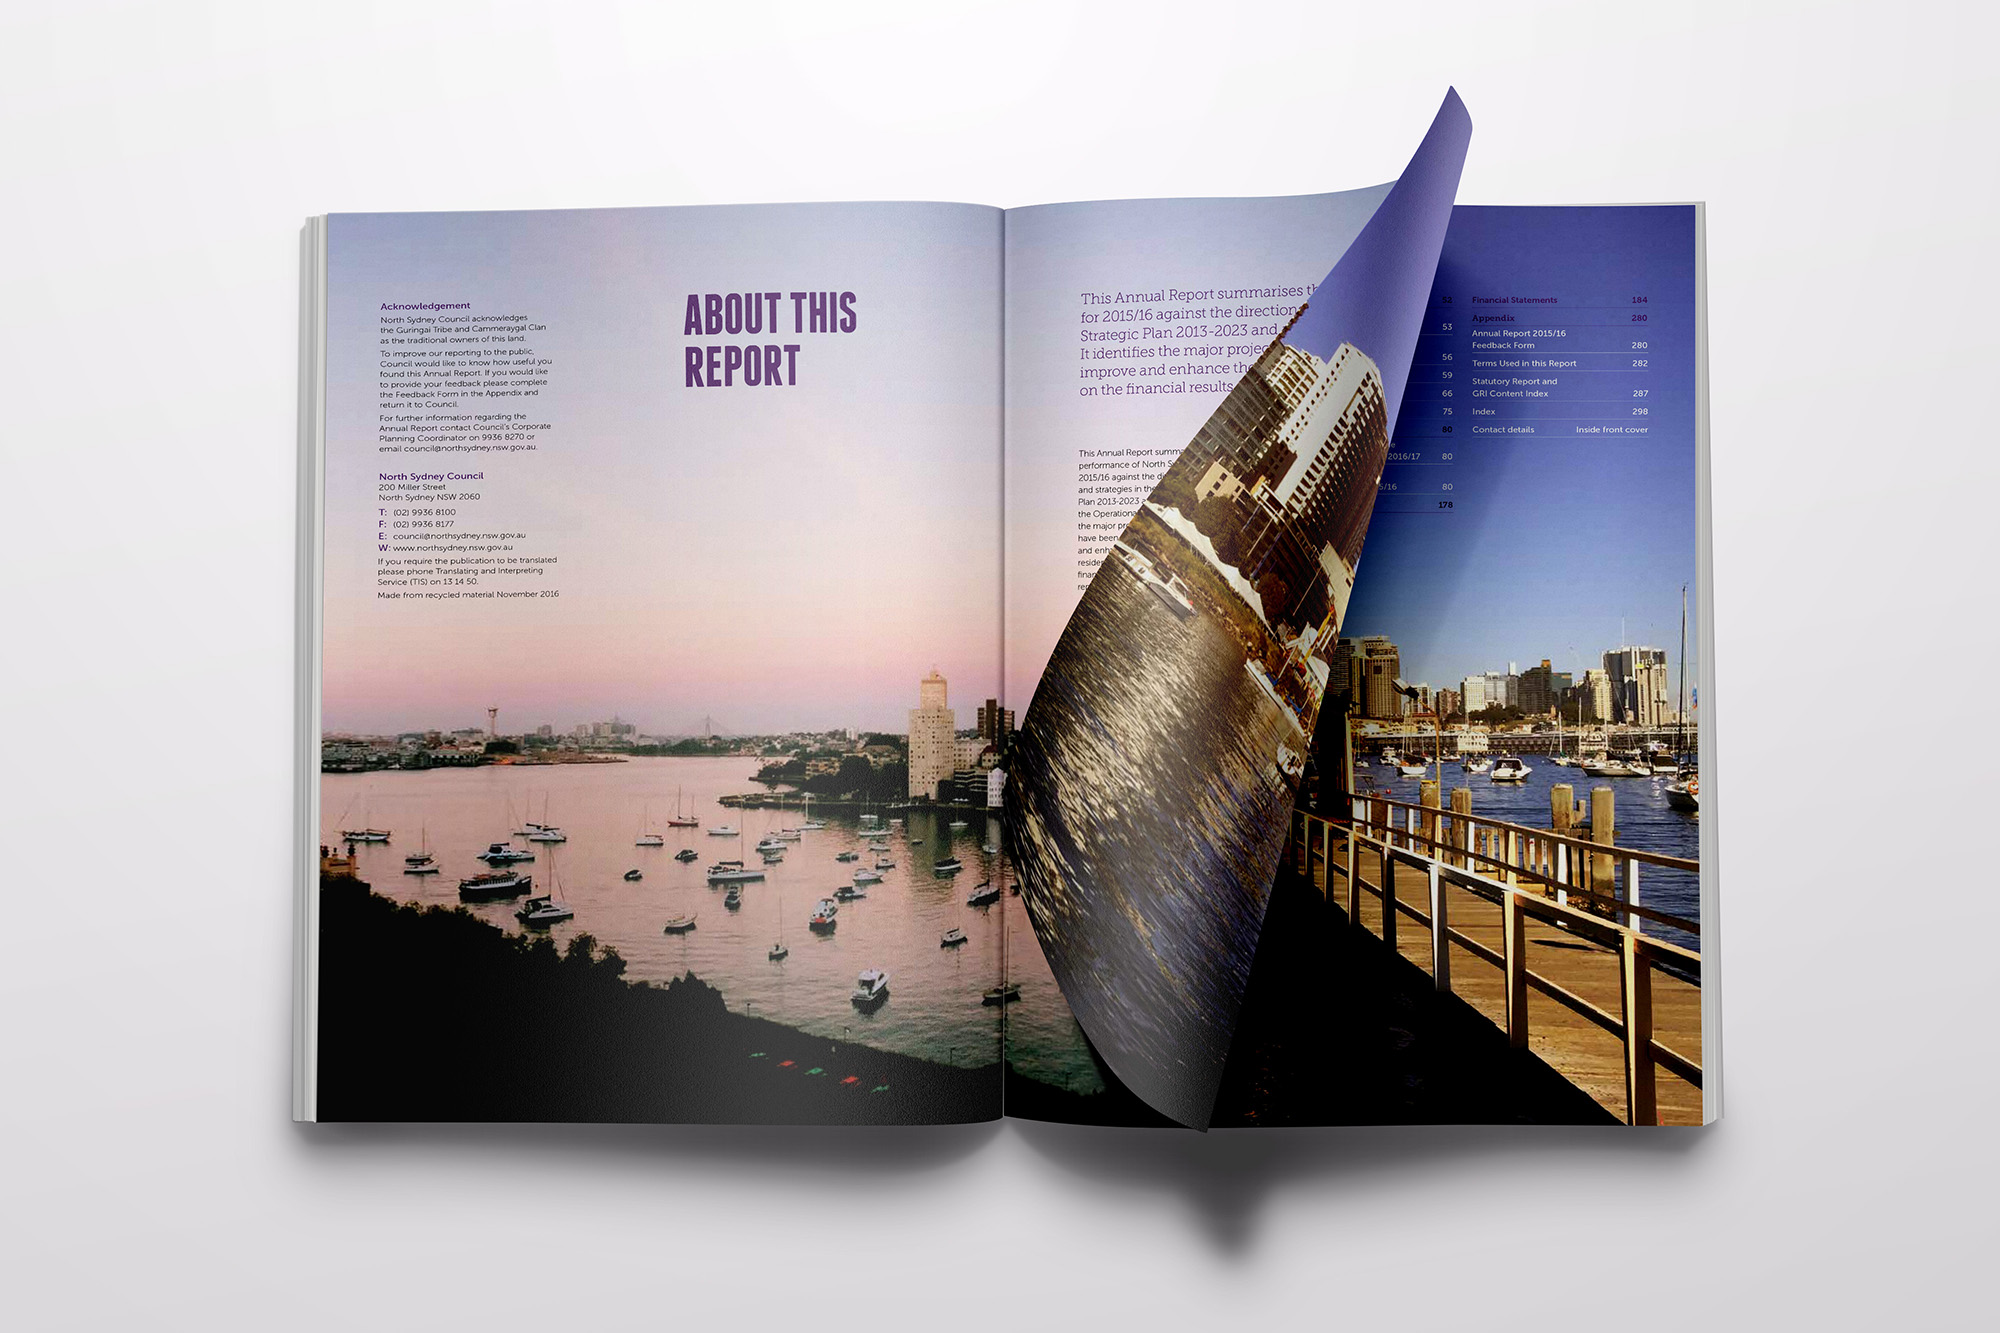 001 Inner pages magazinea